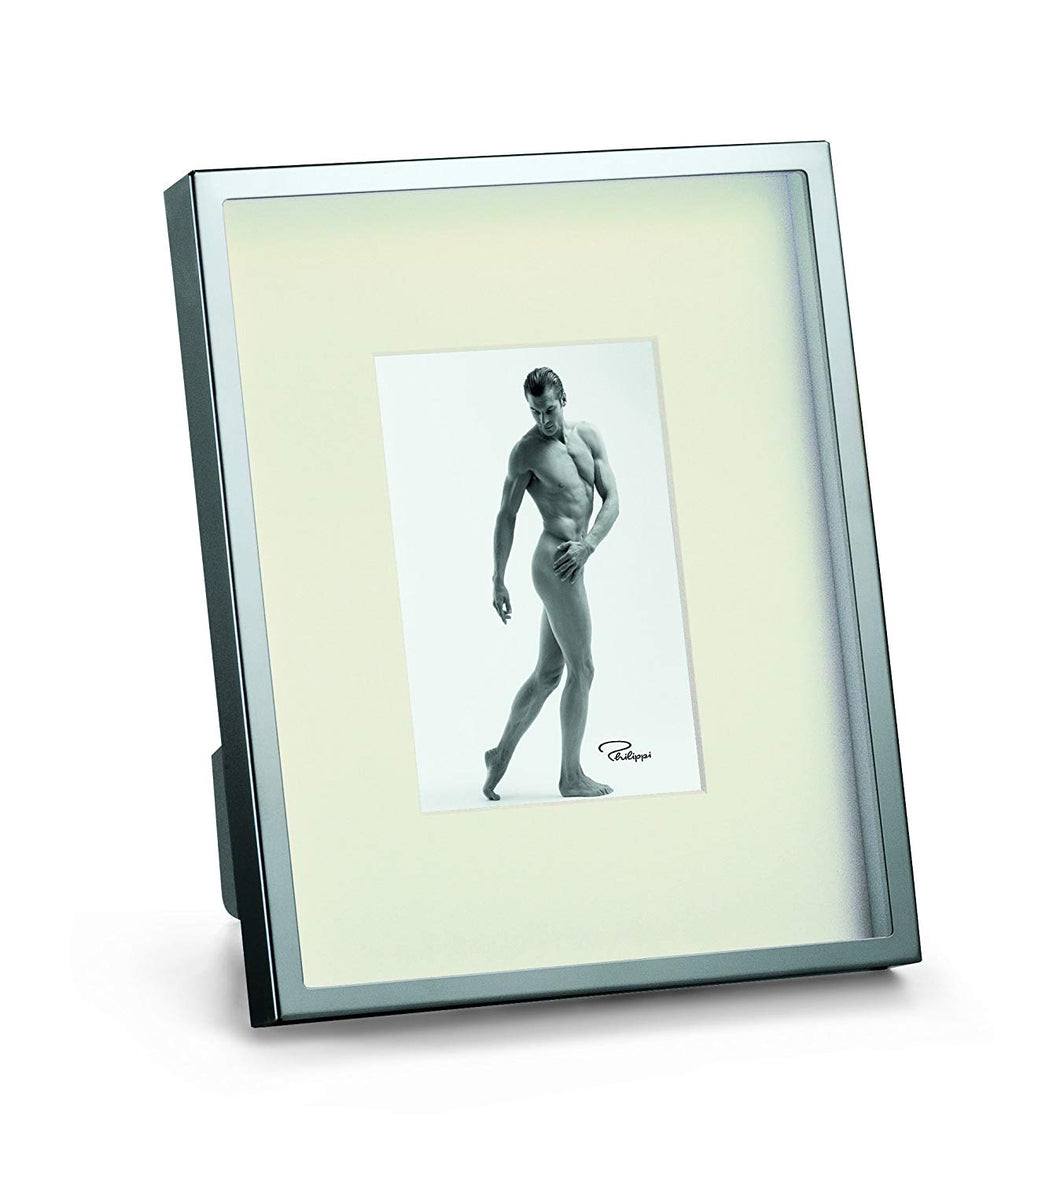 Philippi Portrait Photo Frame, 4